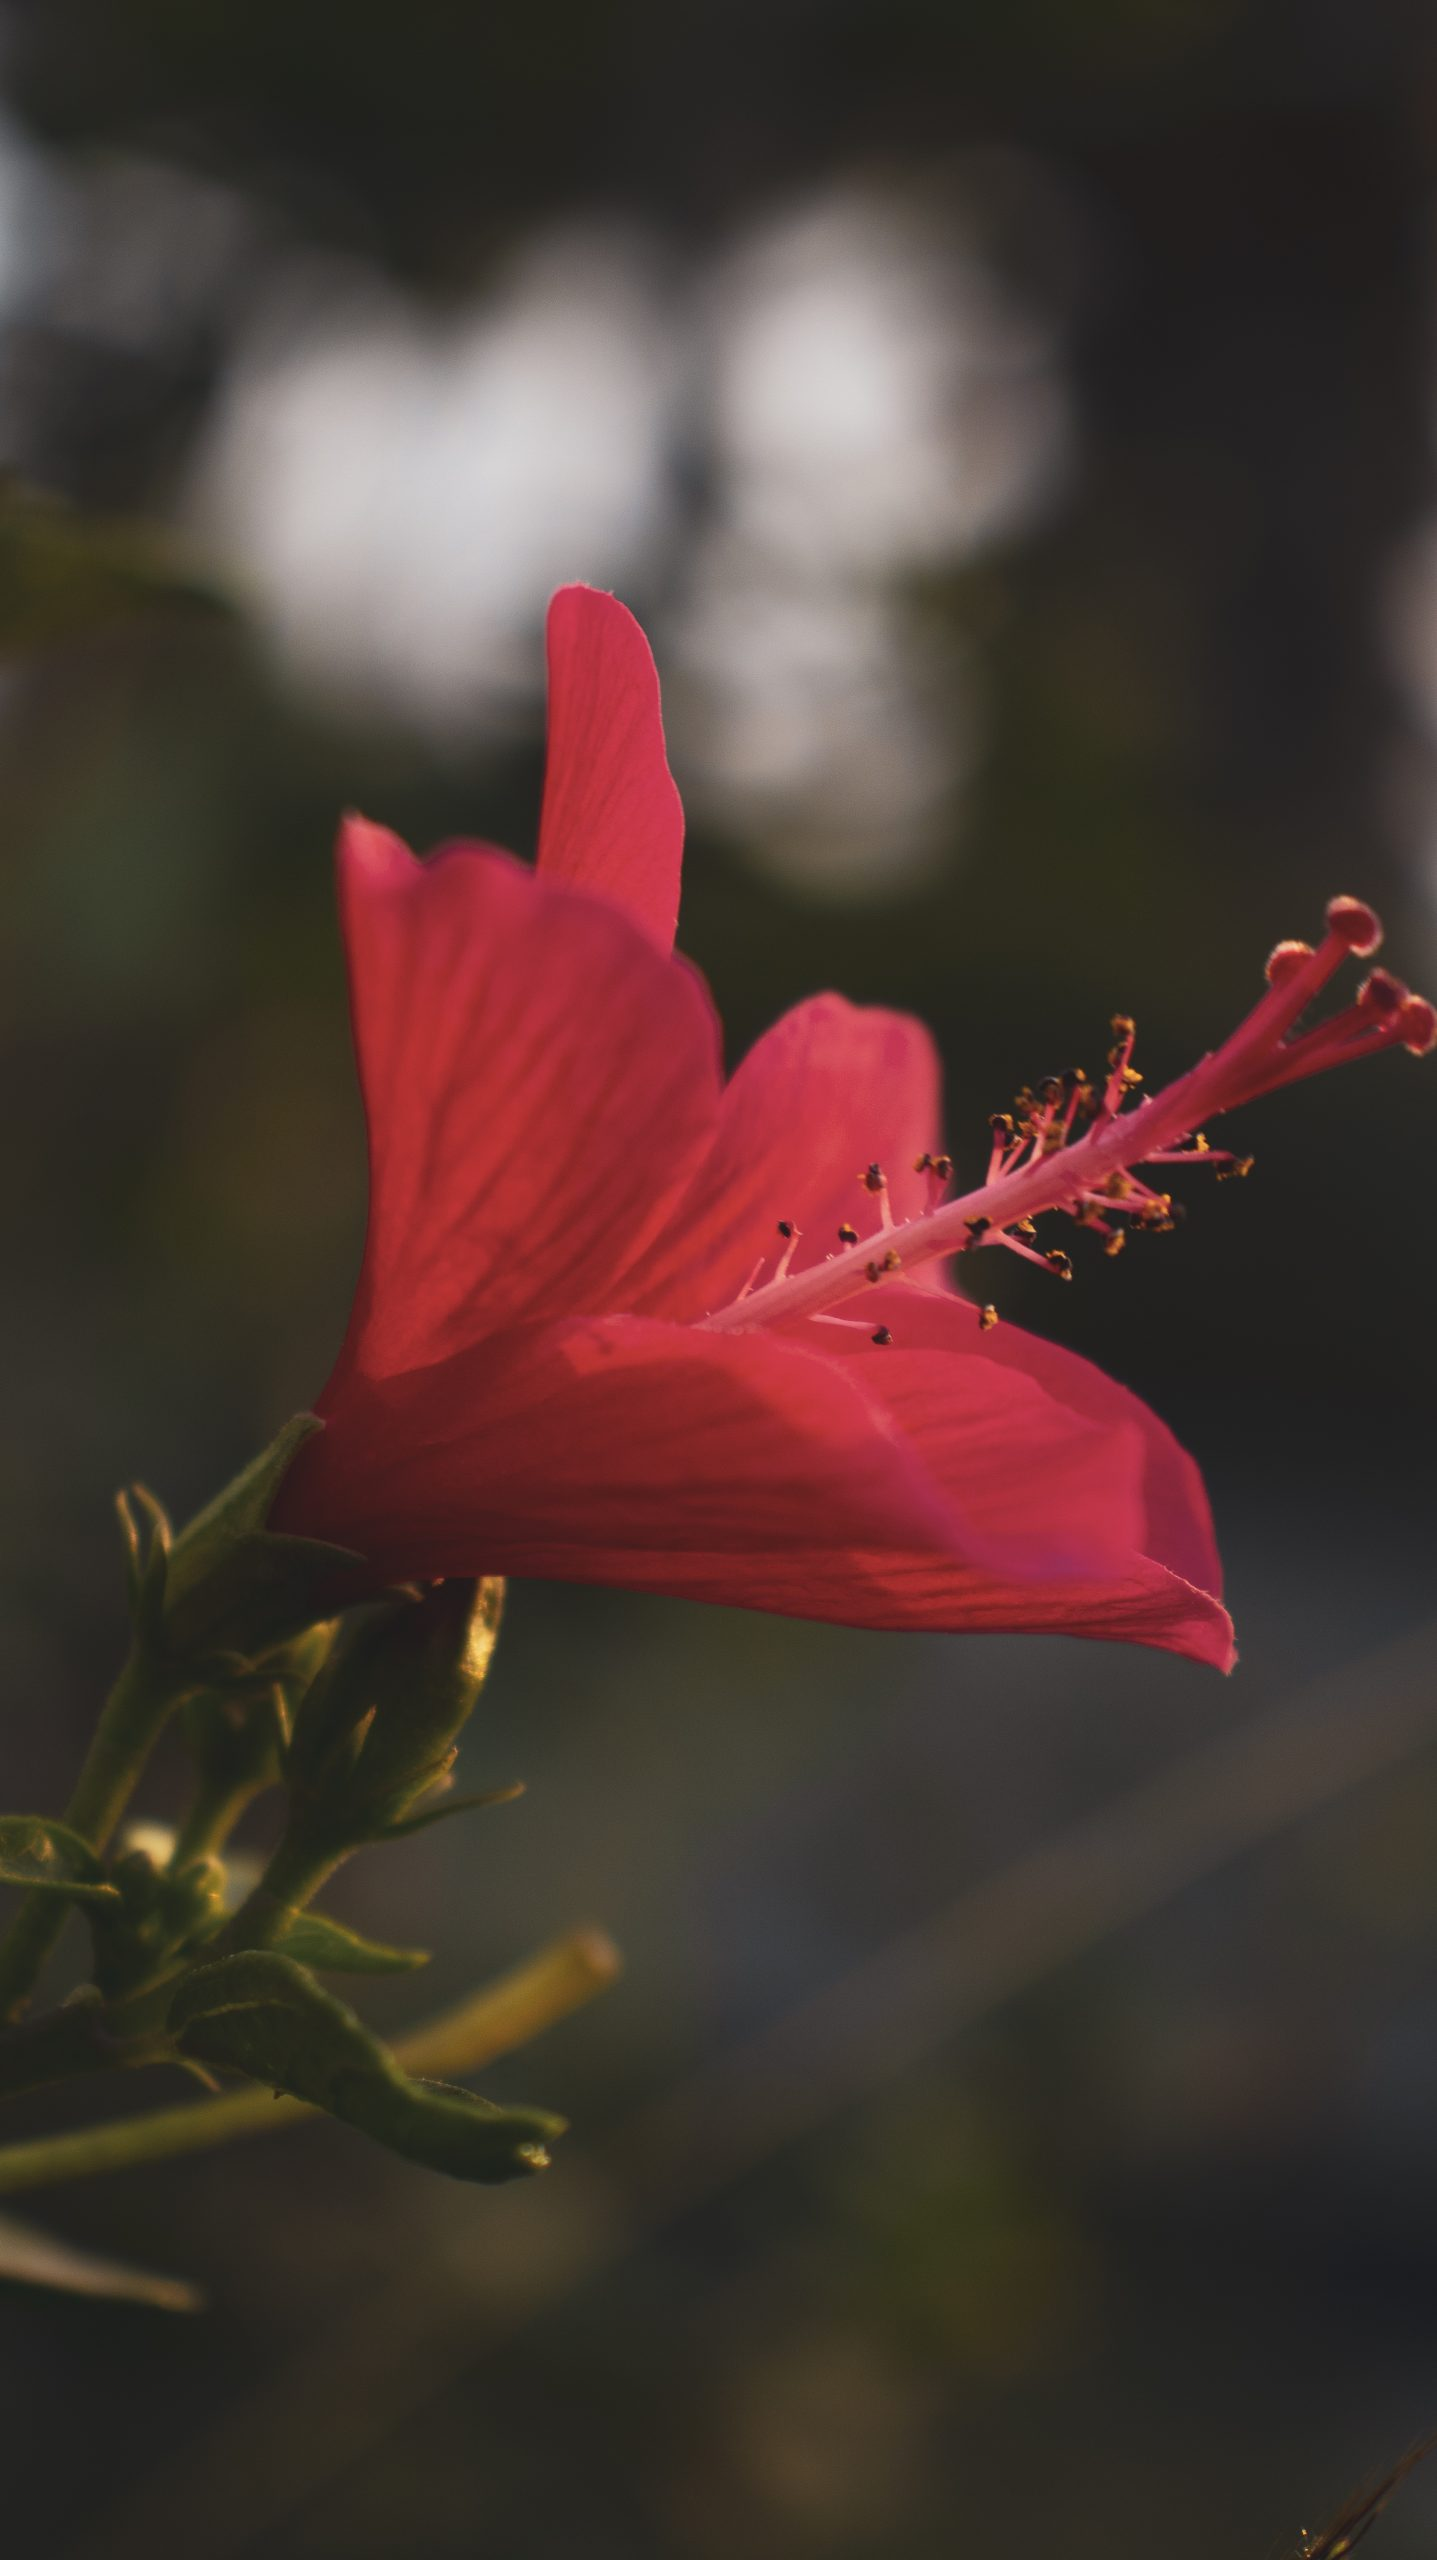 The Sunkissed Flower